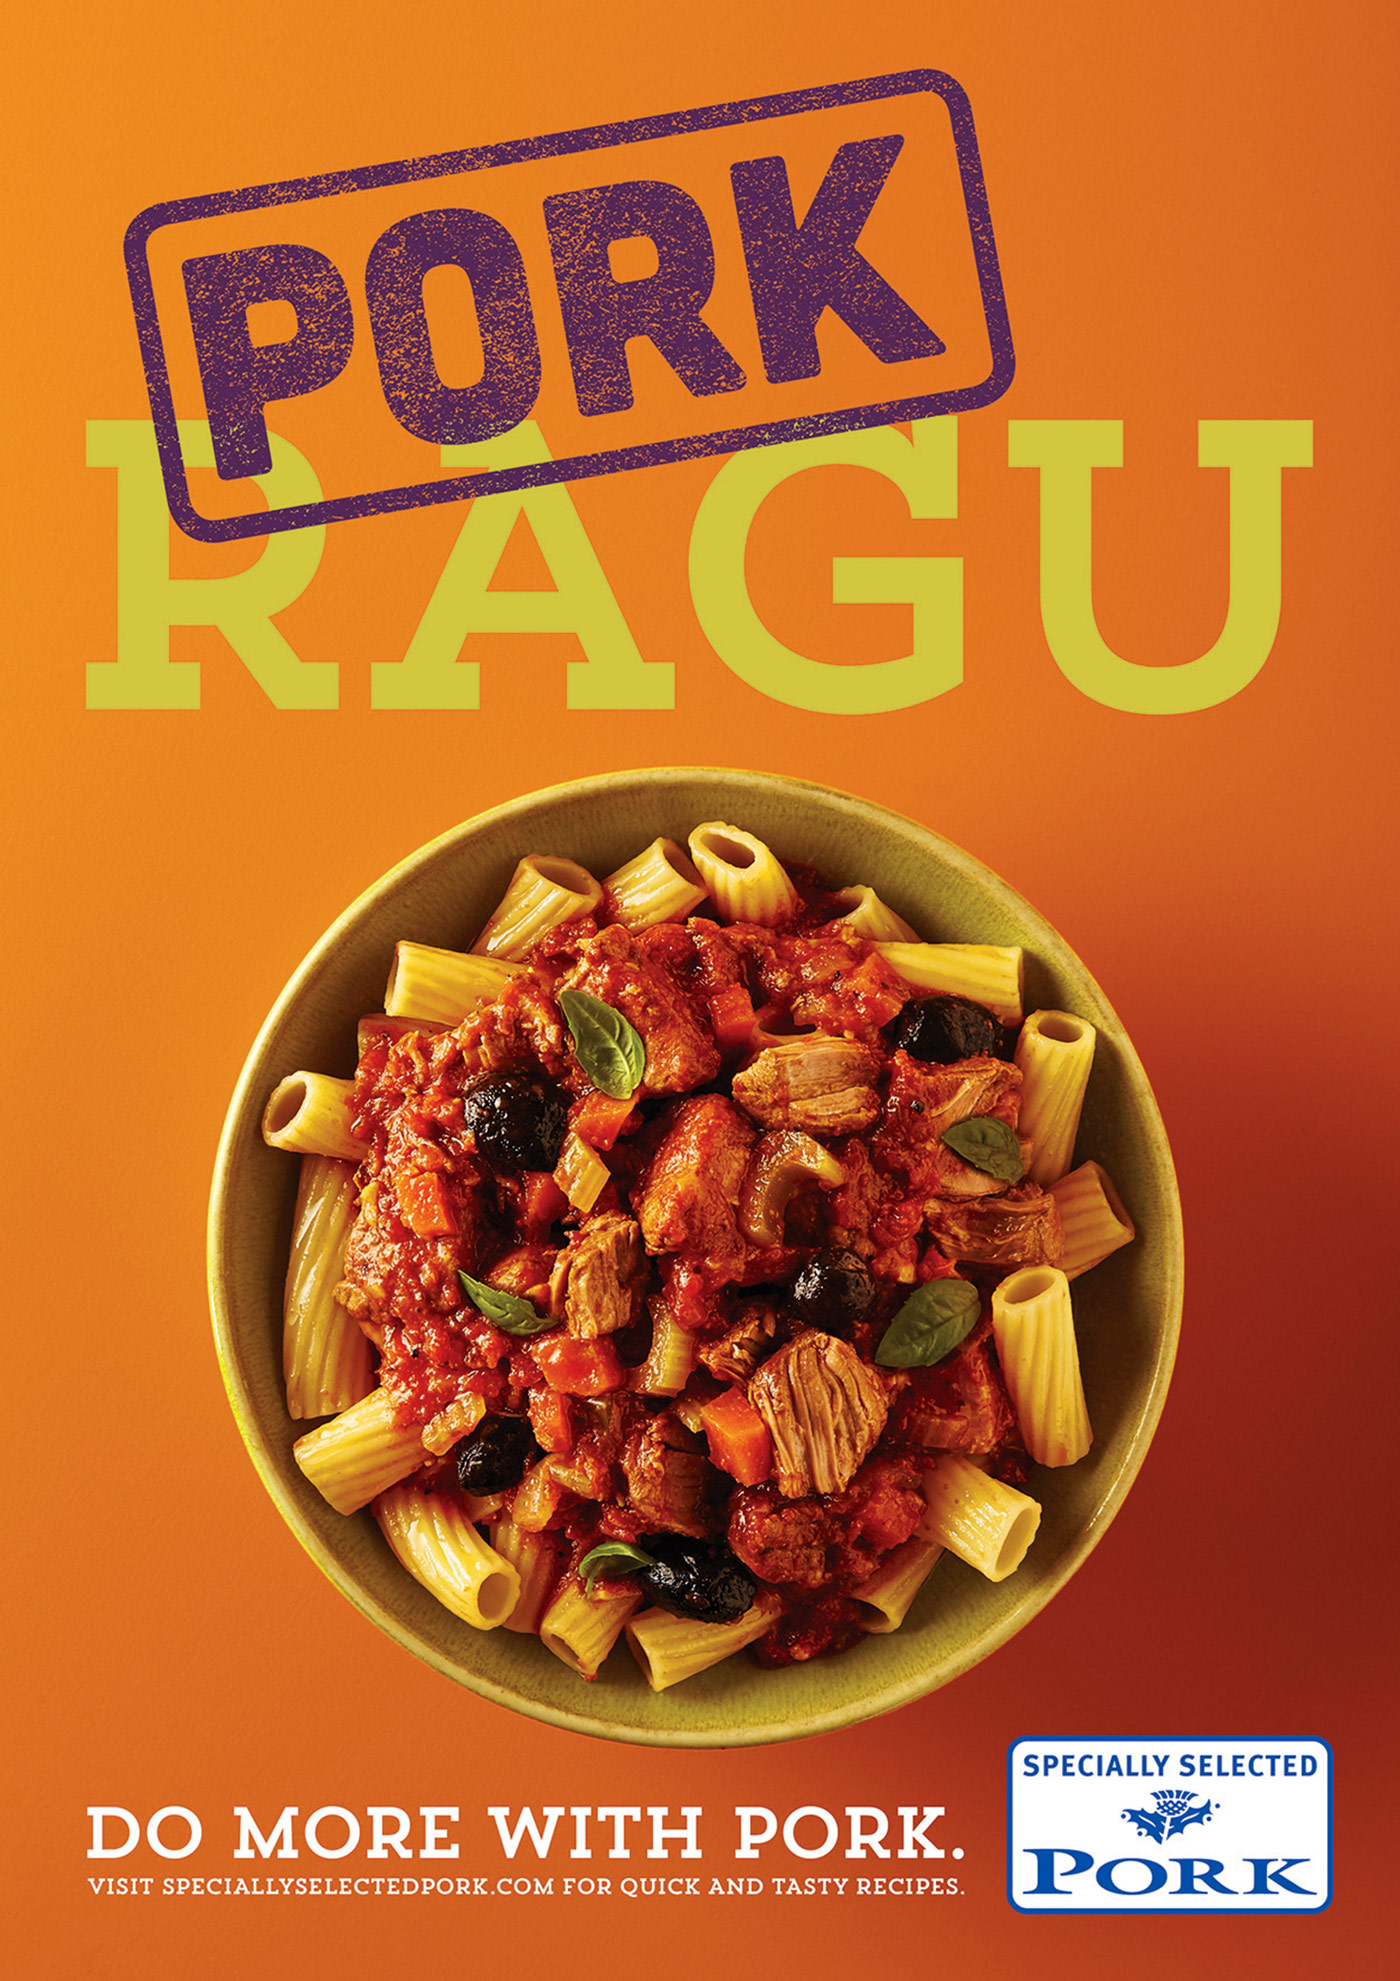 Pork Ragu and Rigatoni Specially Selected Pork, advertising food photography Edinburgh